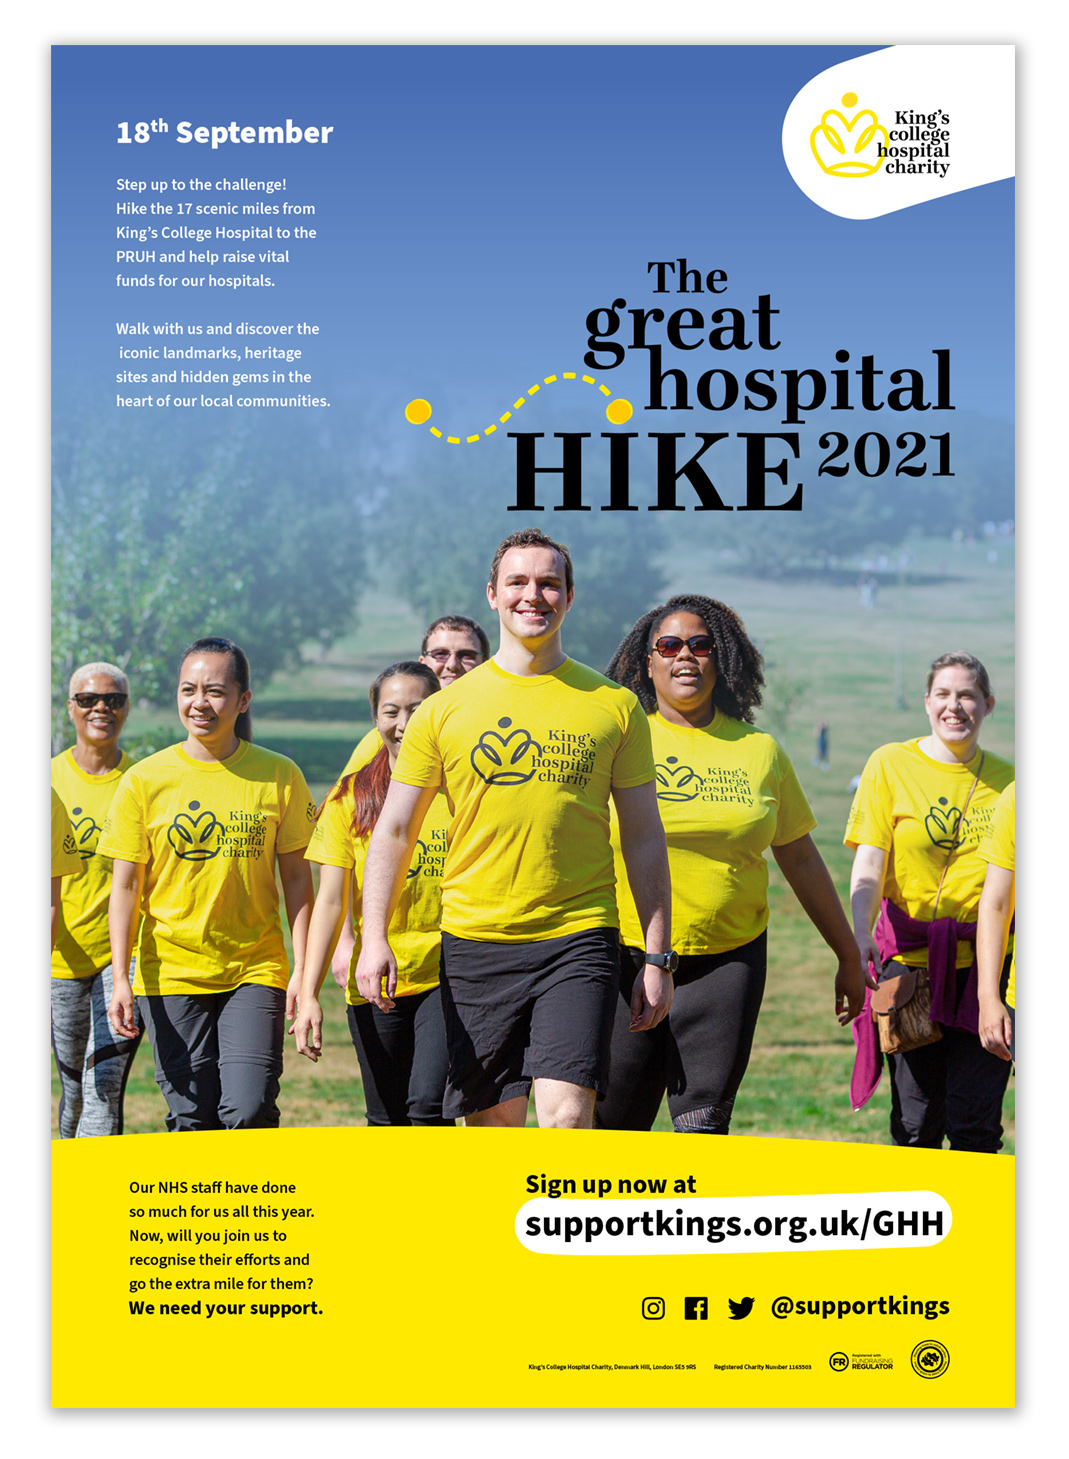 The Great Hospital Hike 2021 Poster